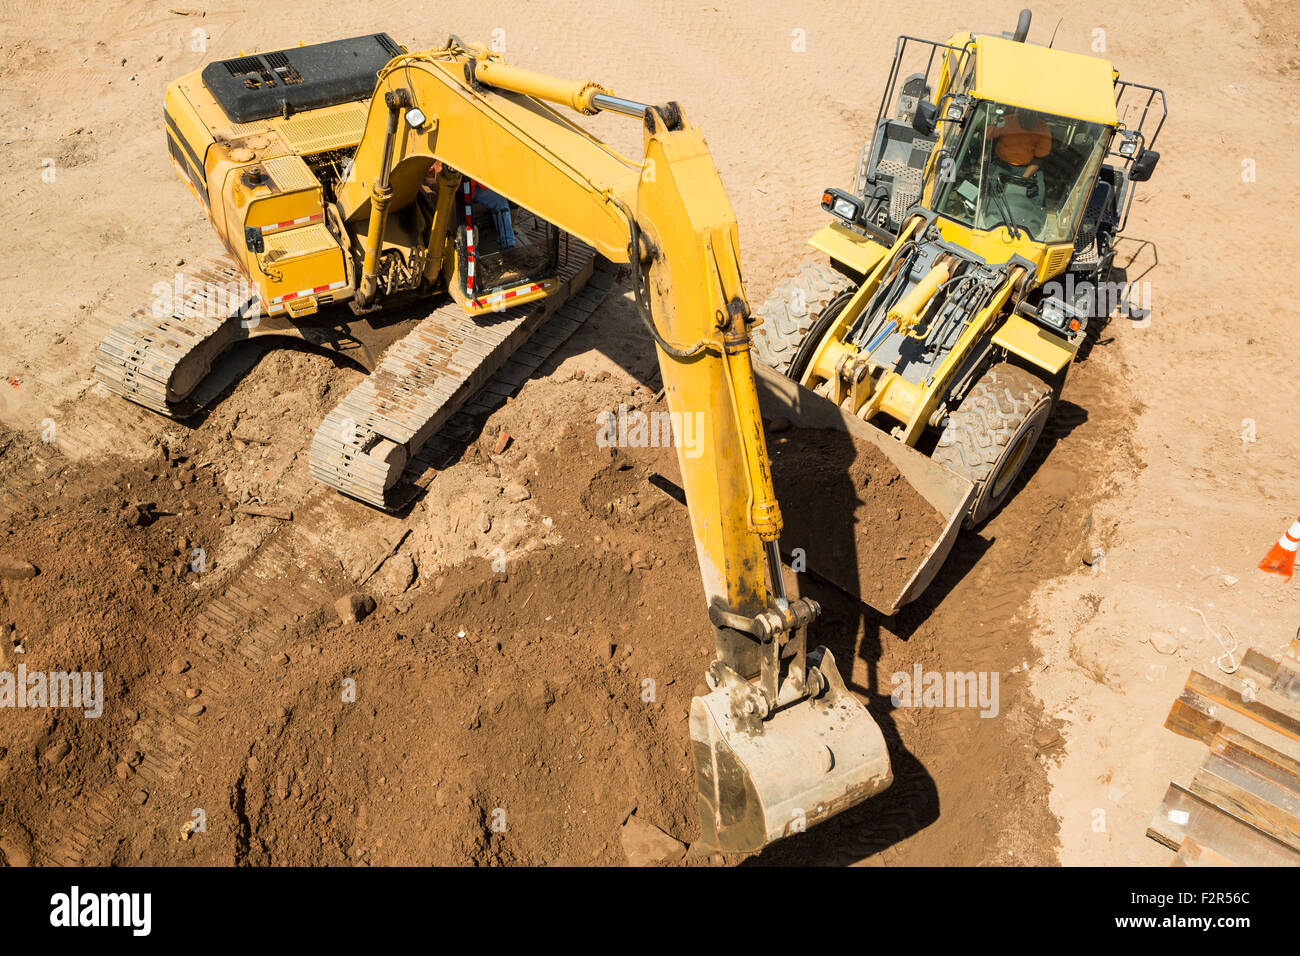 Construction site with a bulldozer and a excavator - Stock Image